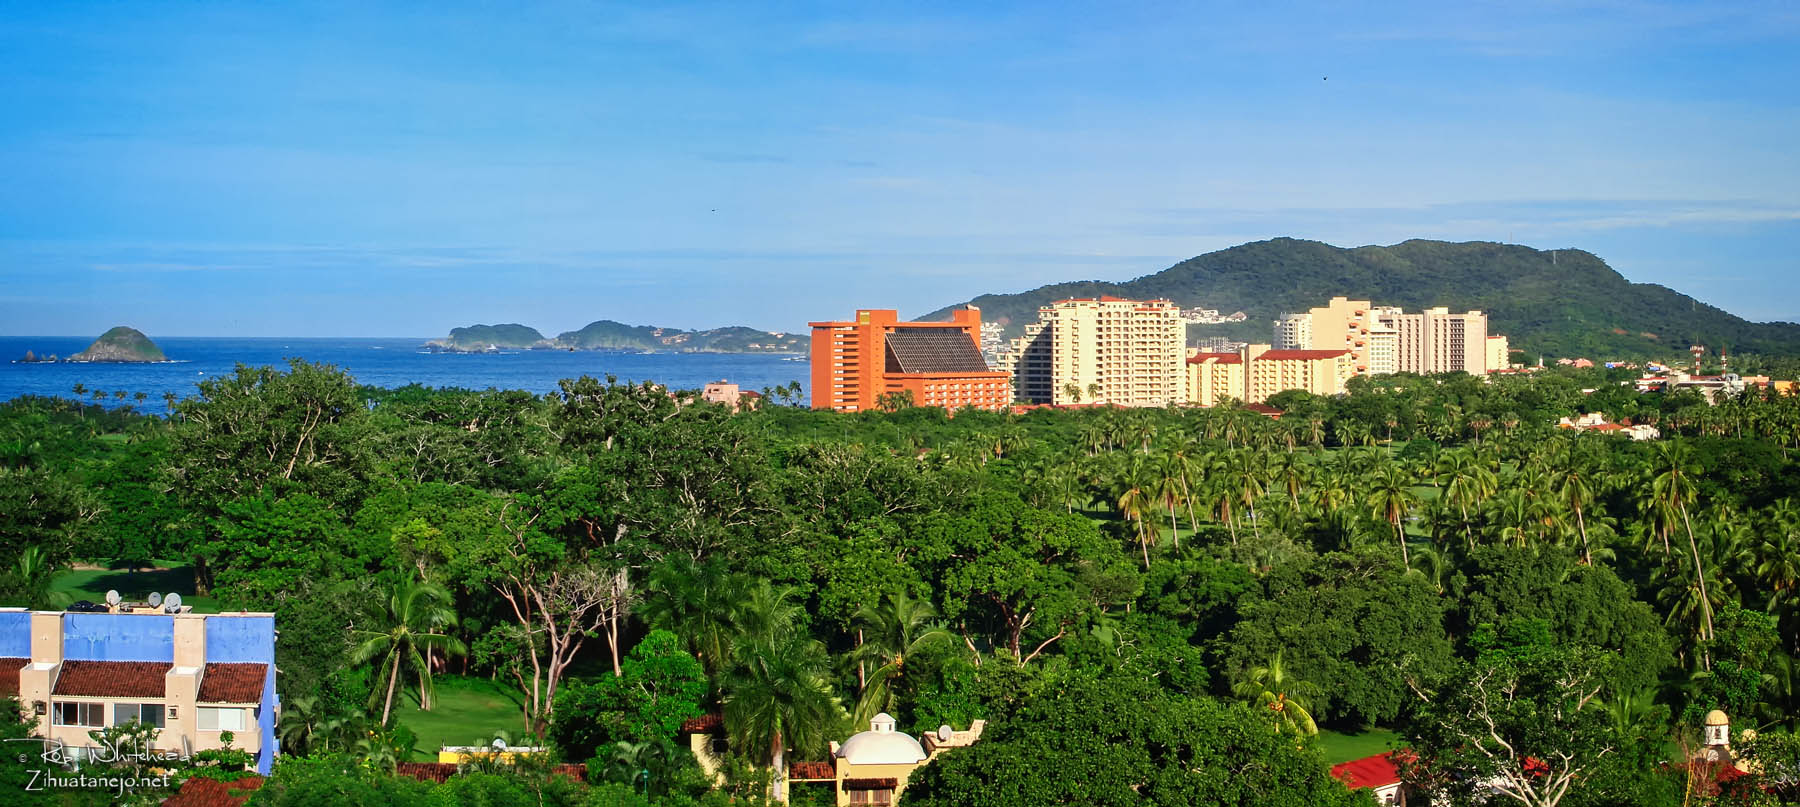 Hotels and condominiums in Ixtapa